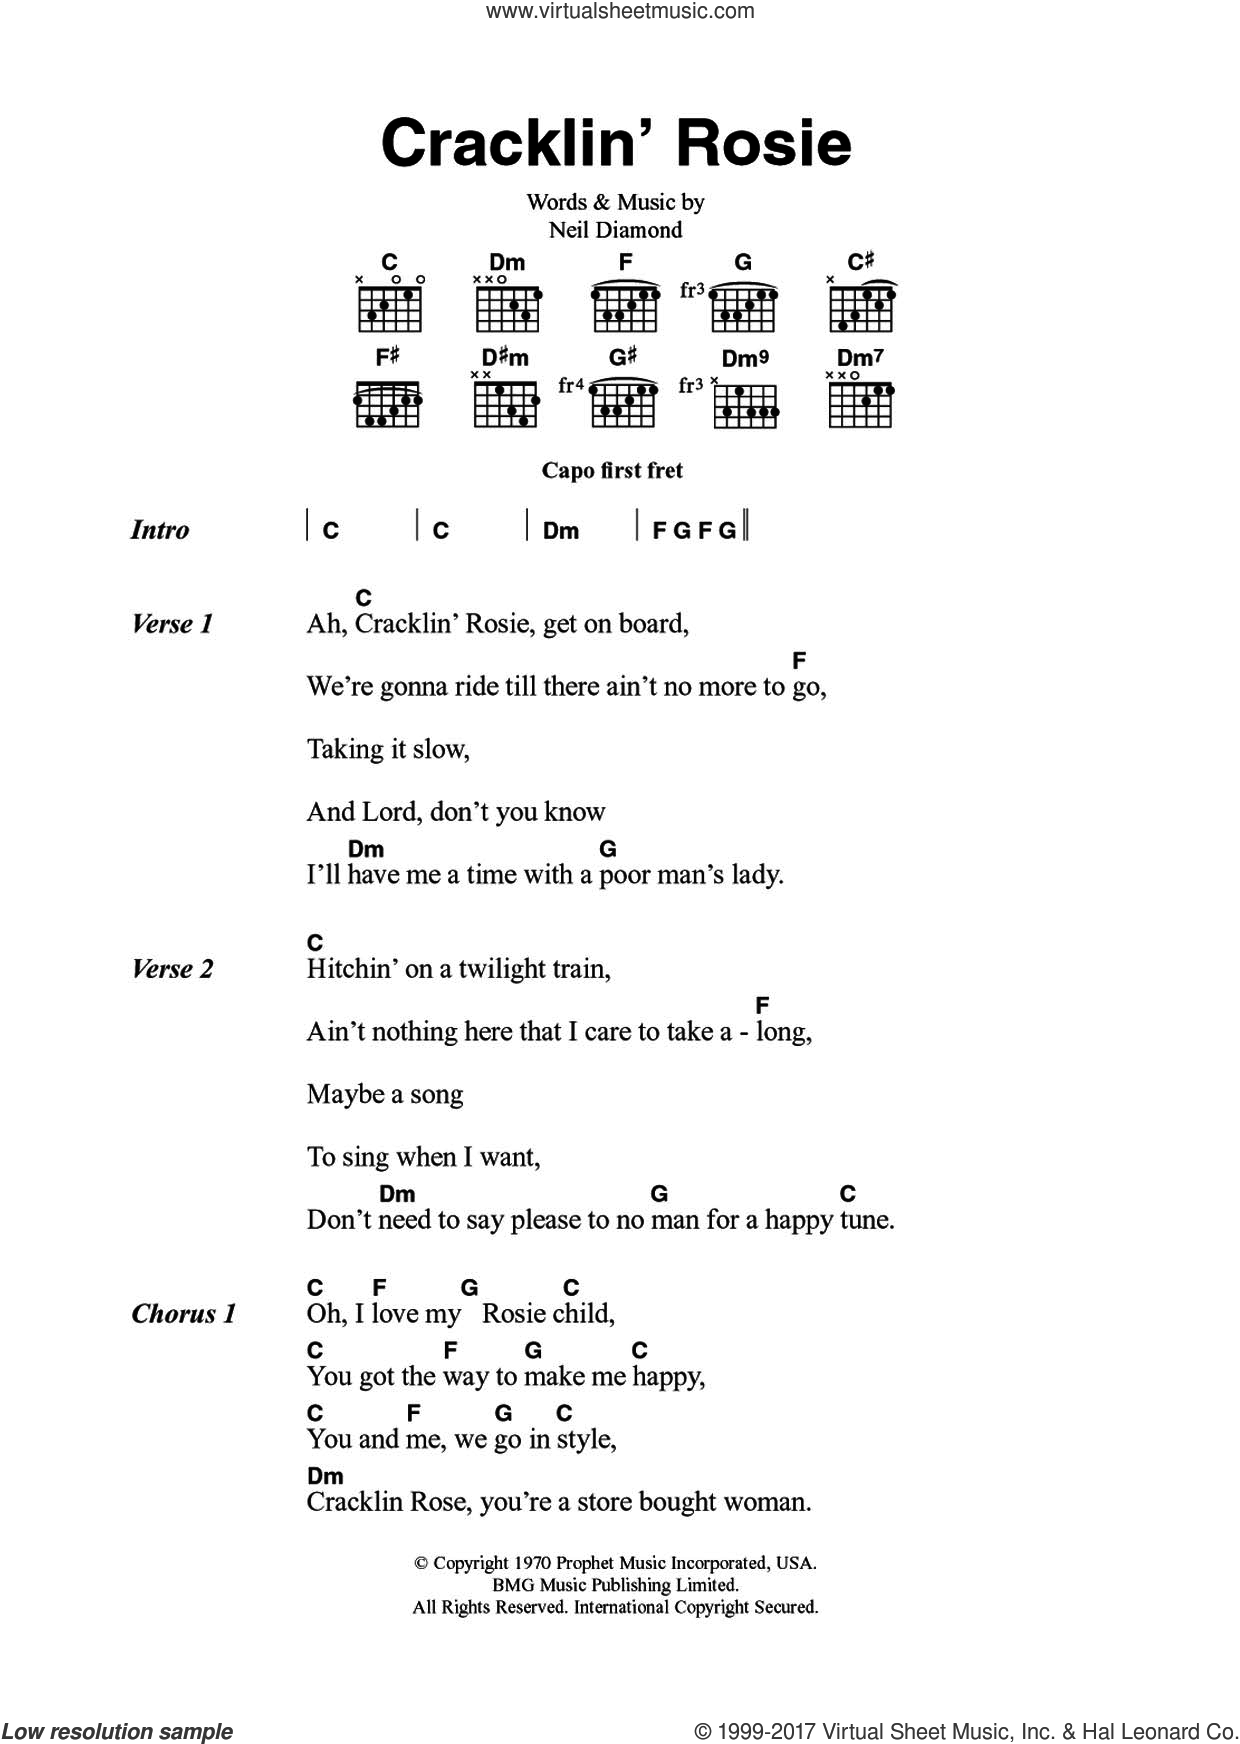 Cracklin' Rosie sheet music for guitar (chords) by Neil Diamond, intermediate skill level